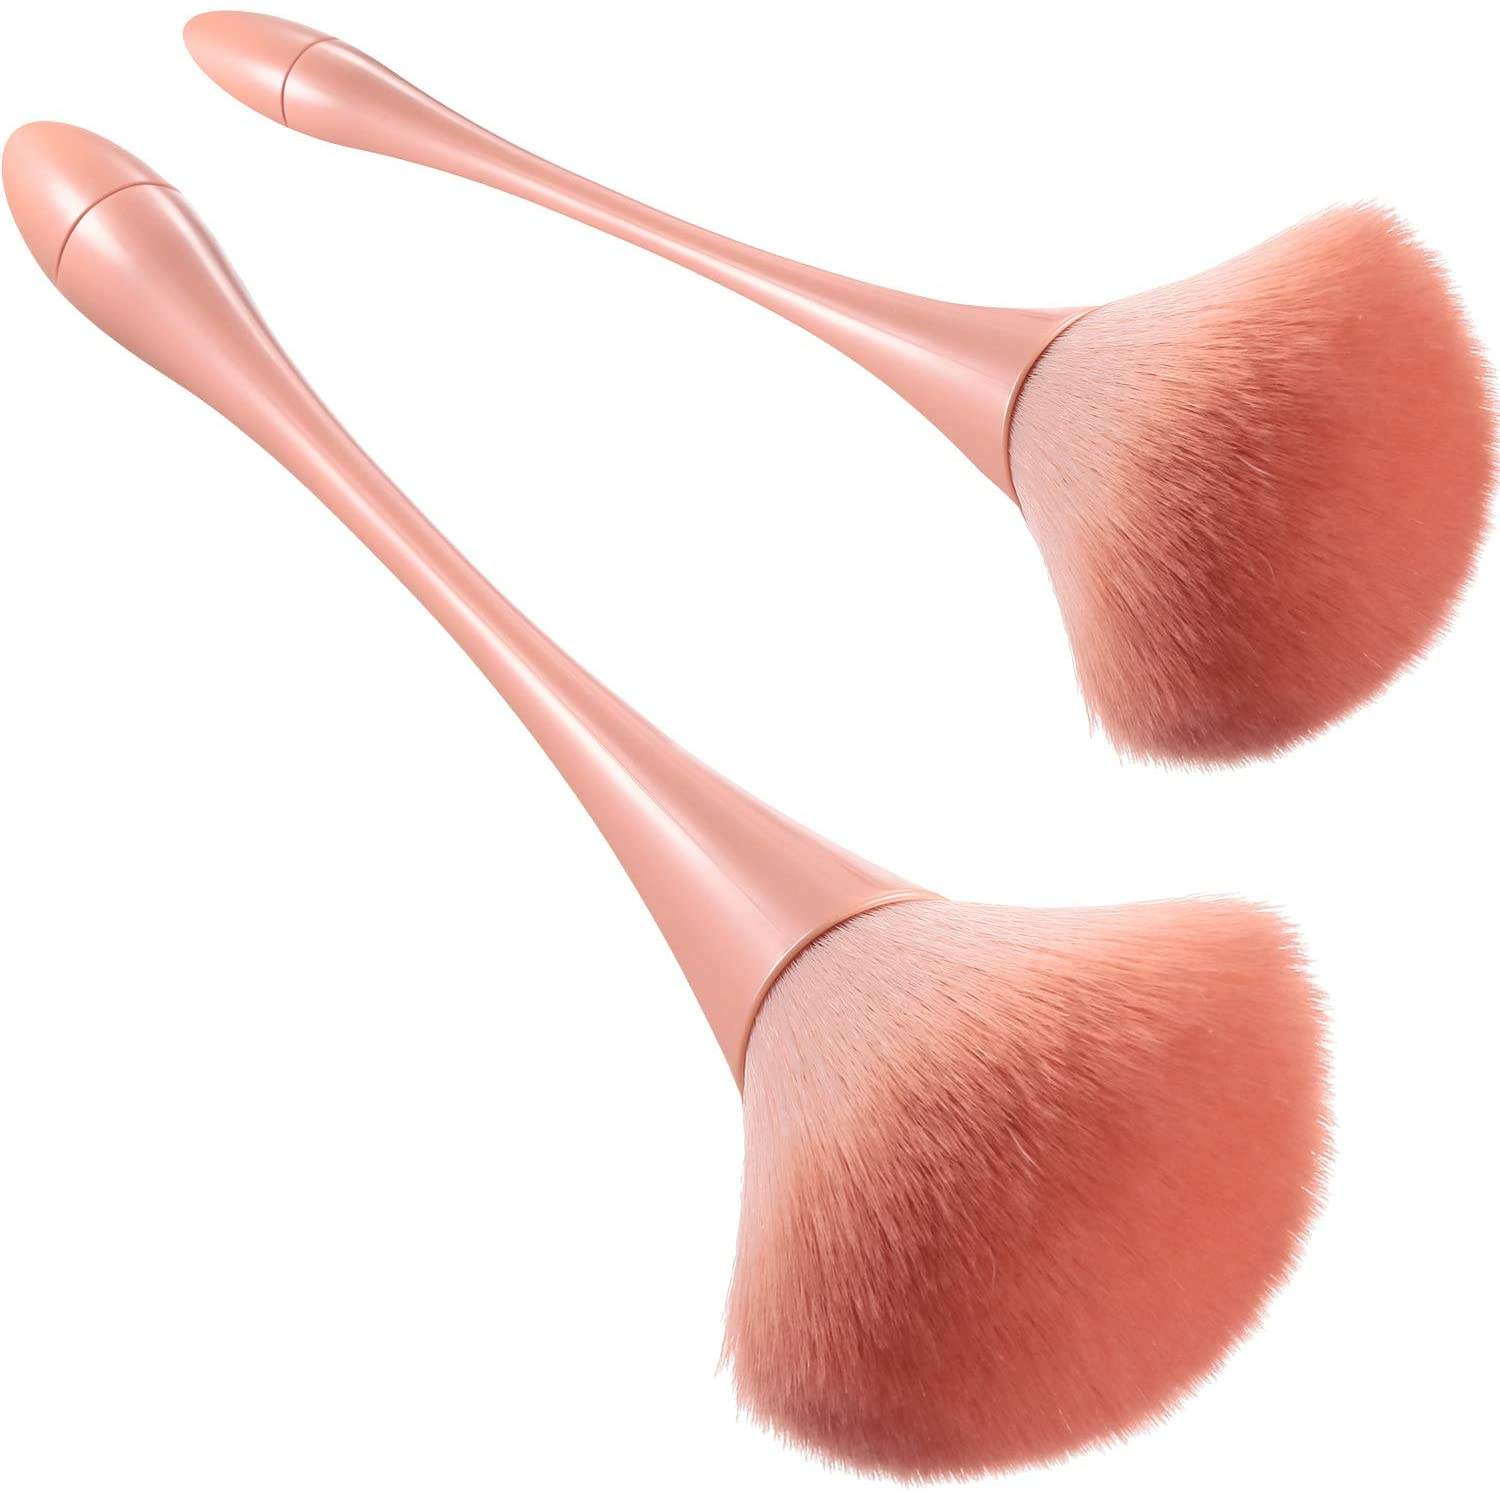 Wholesale Large Mineral Powder Brush Nail Brushes Kabuki Makeup Brushes Soft Fluffy Foundation Blush Blending Buffing OEM/ODM